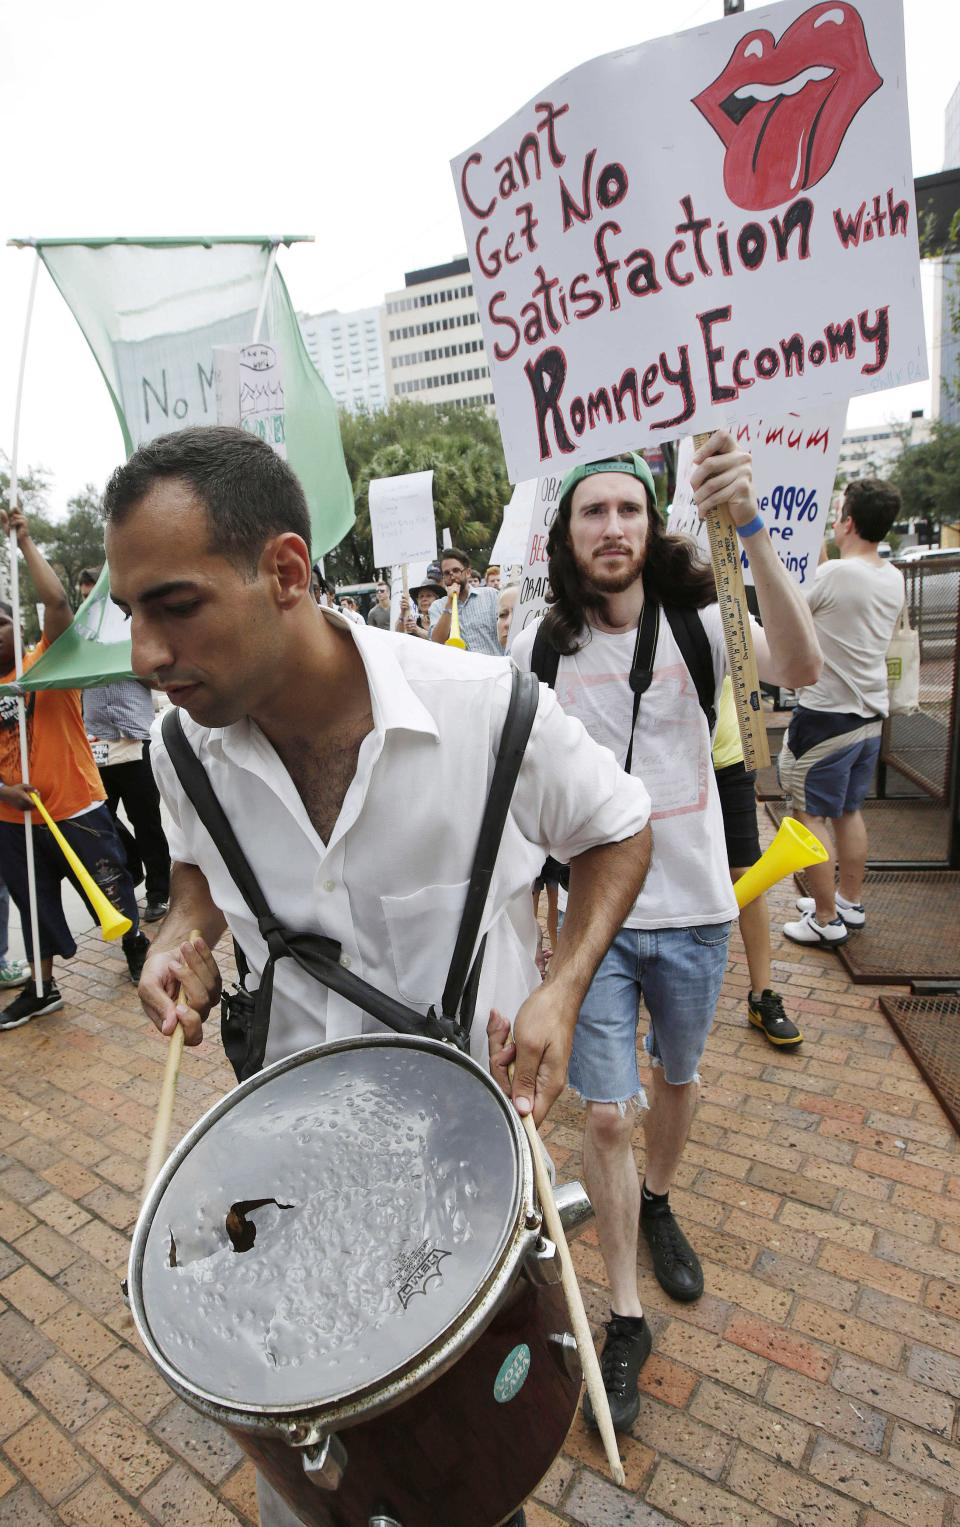 Ganzalo Valdes, of Tampa, Fla., marches with demonstrators in Tampa, Fla., Sunday, Aug. 26, 2012. Hundreds of protestors gathered in Gas Light Park in downtown Tampa to march in demonstration against the Republican National Convention. (AP Photo/Dave Martin)